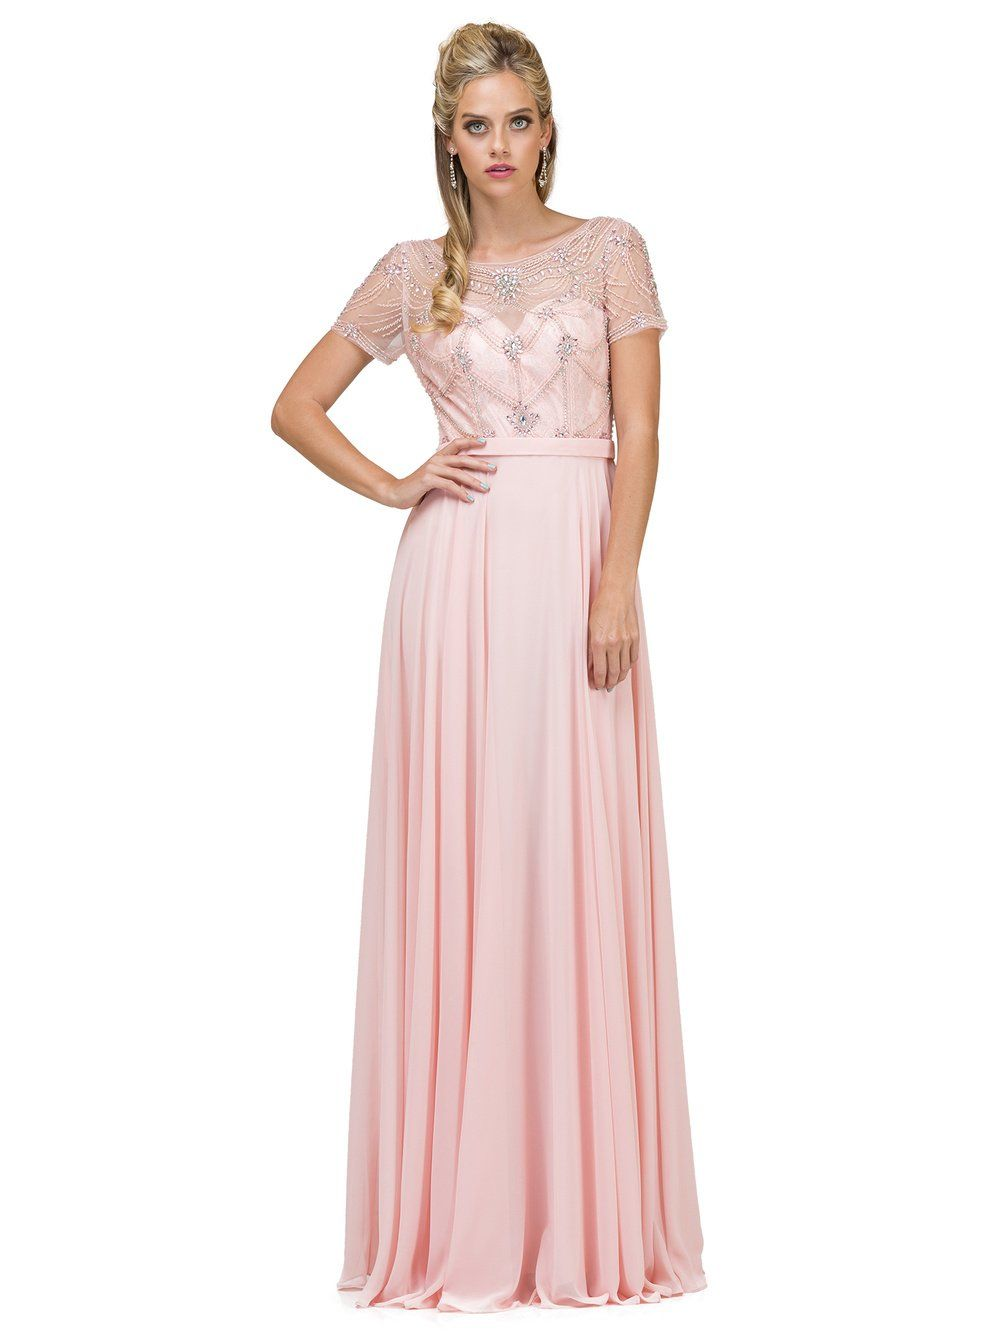 Plus Size Evening Gown With Sleeves Dq2067 Simply Fab Dress